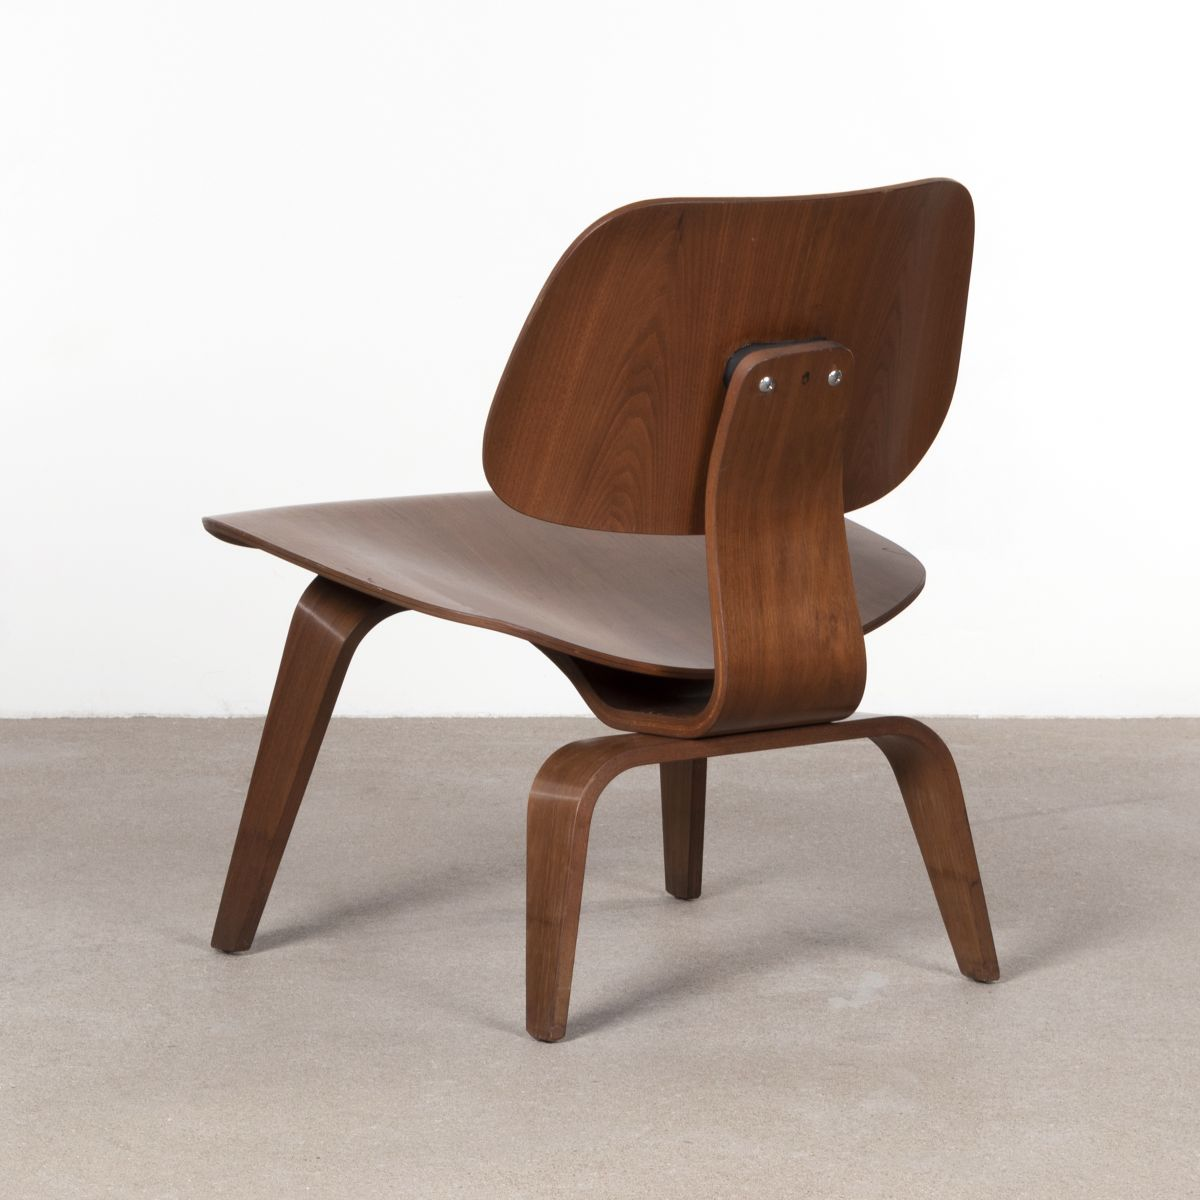 Chaise lcw en noyer par charles ray eames pour herman miller 1950s en vente sur pamono - Chaise charles et ray eames ...